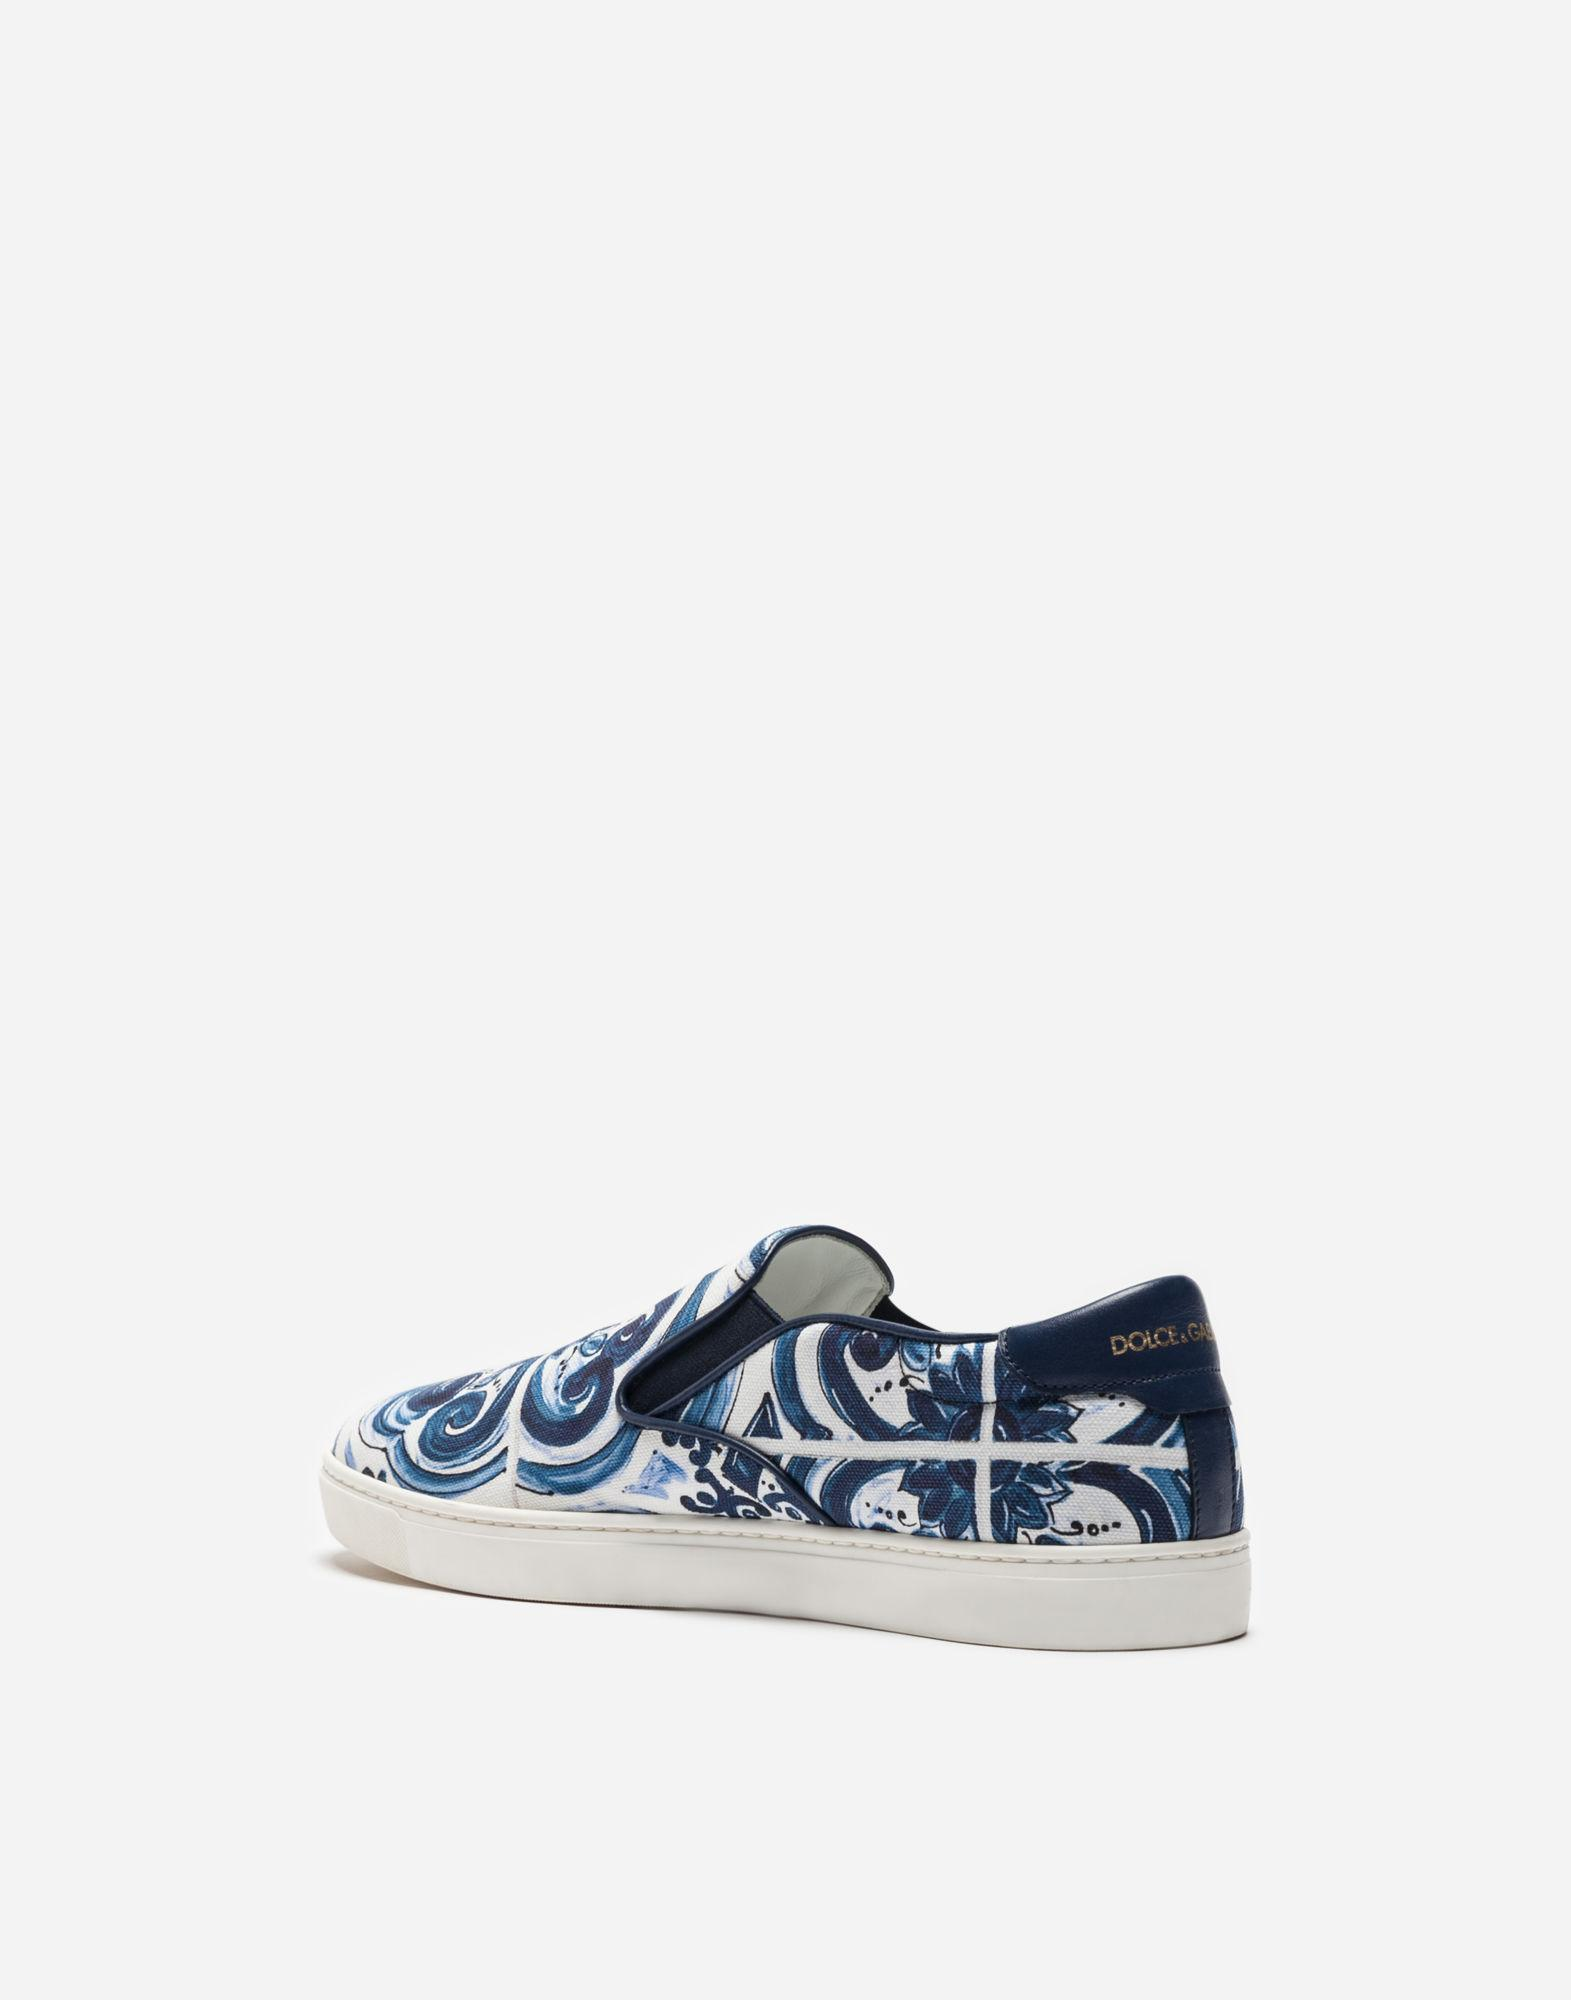 Dolce & Gabbana London Sneakers In Printed Canvas in Blue